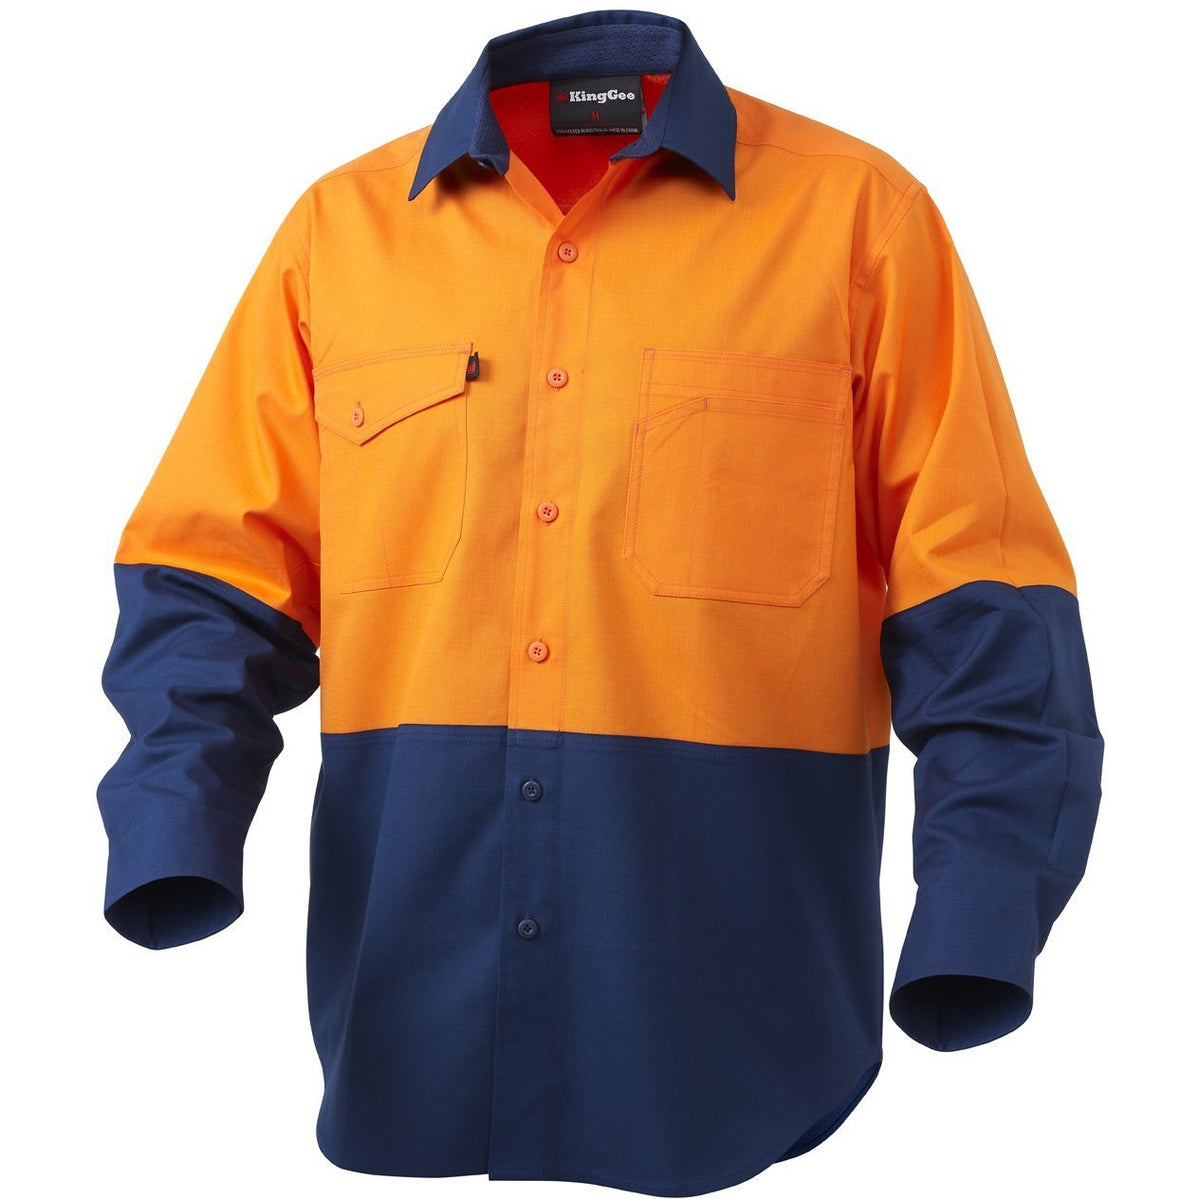 King Gee - Workcool2 Hi-Vis Spliced Shirt Long Sleeve